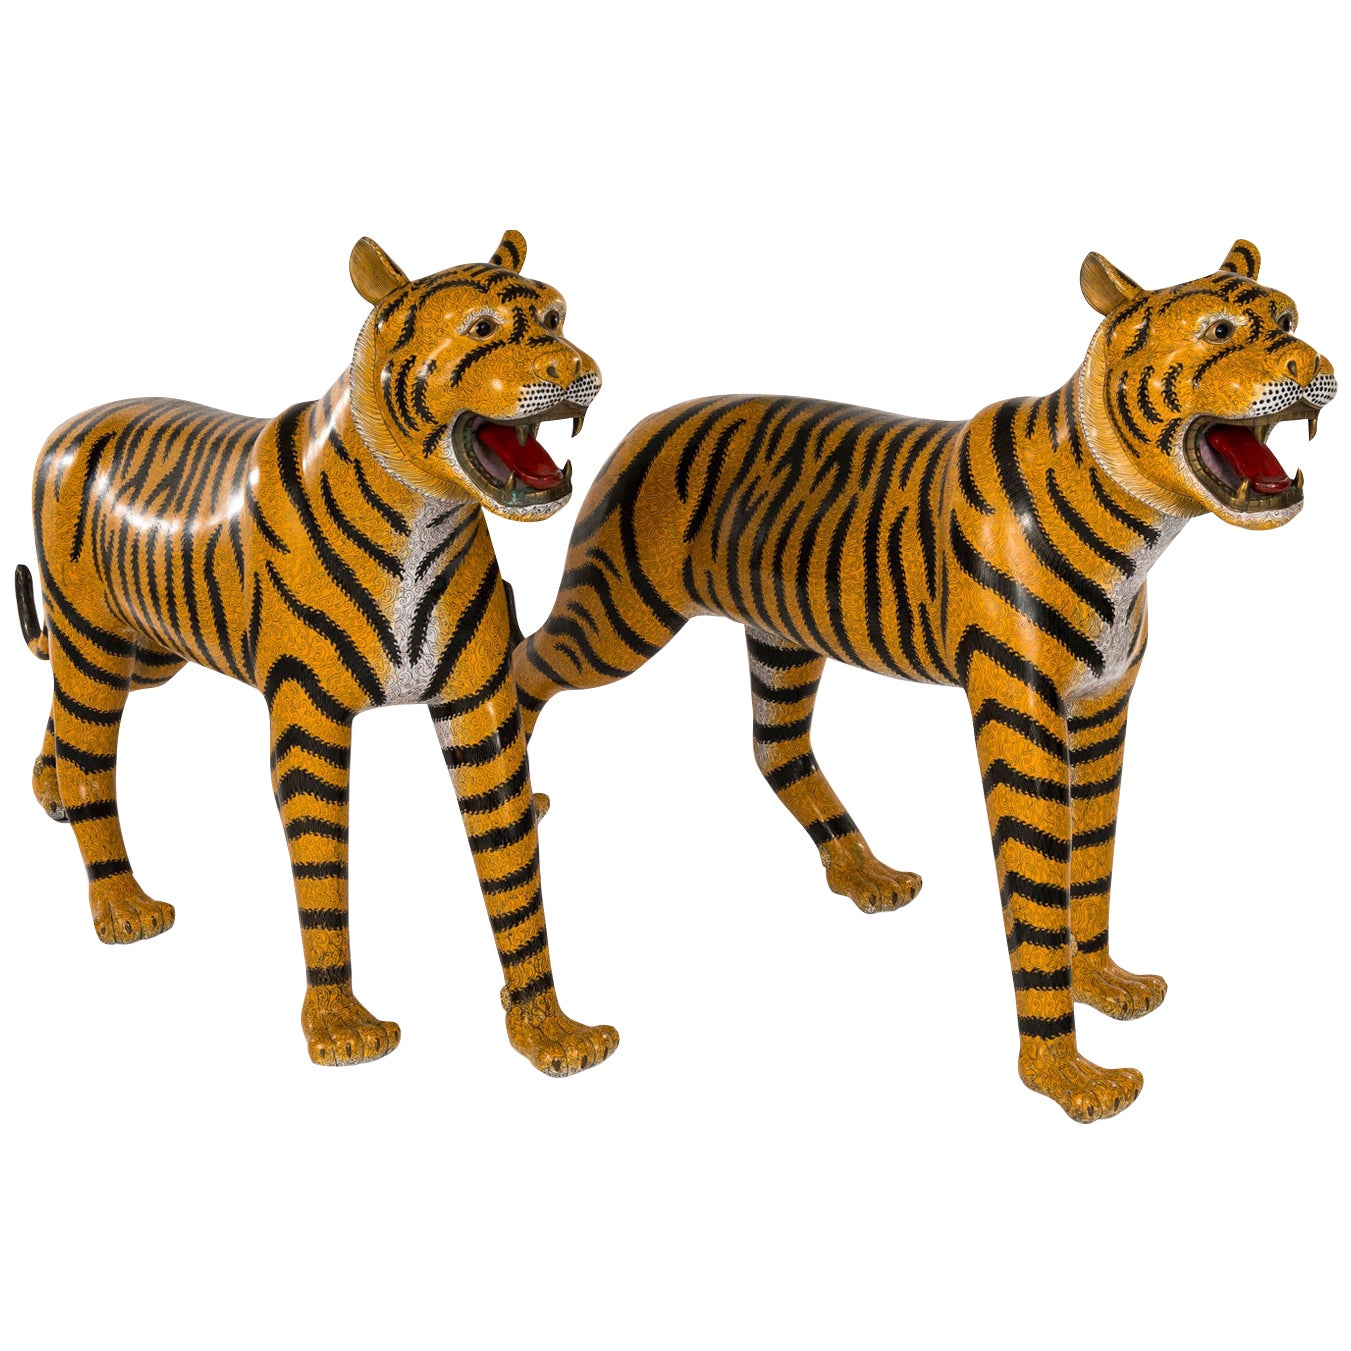 Pair of Chinese Cloisonné Tigers